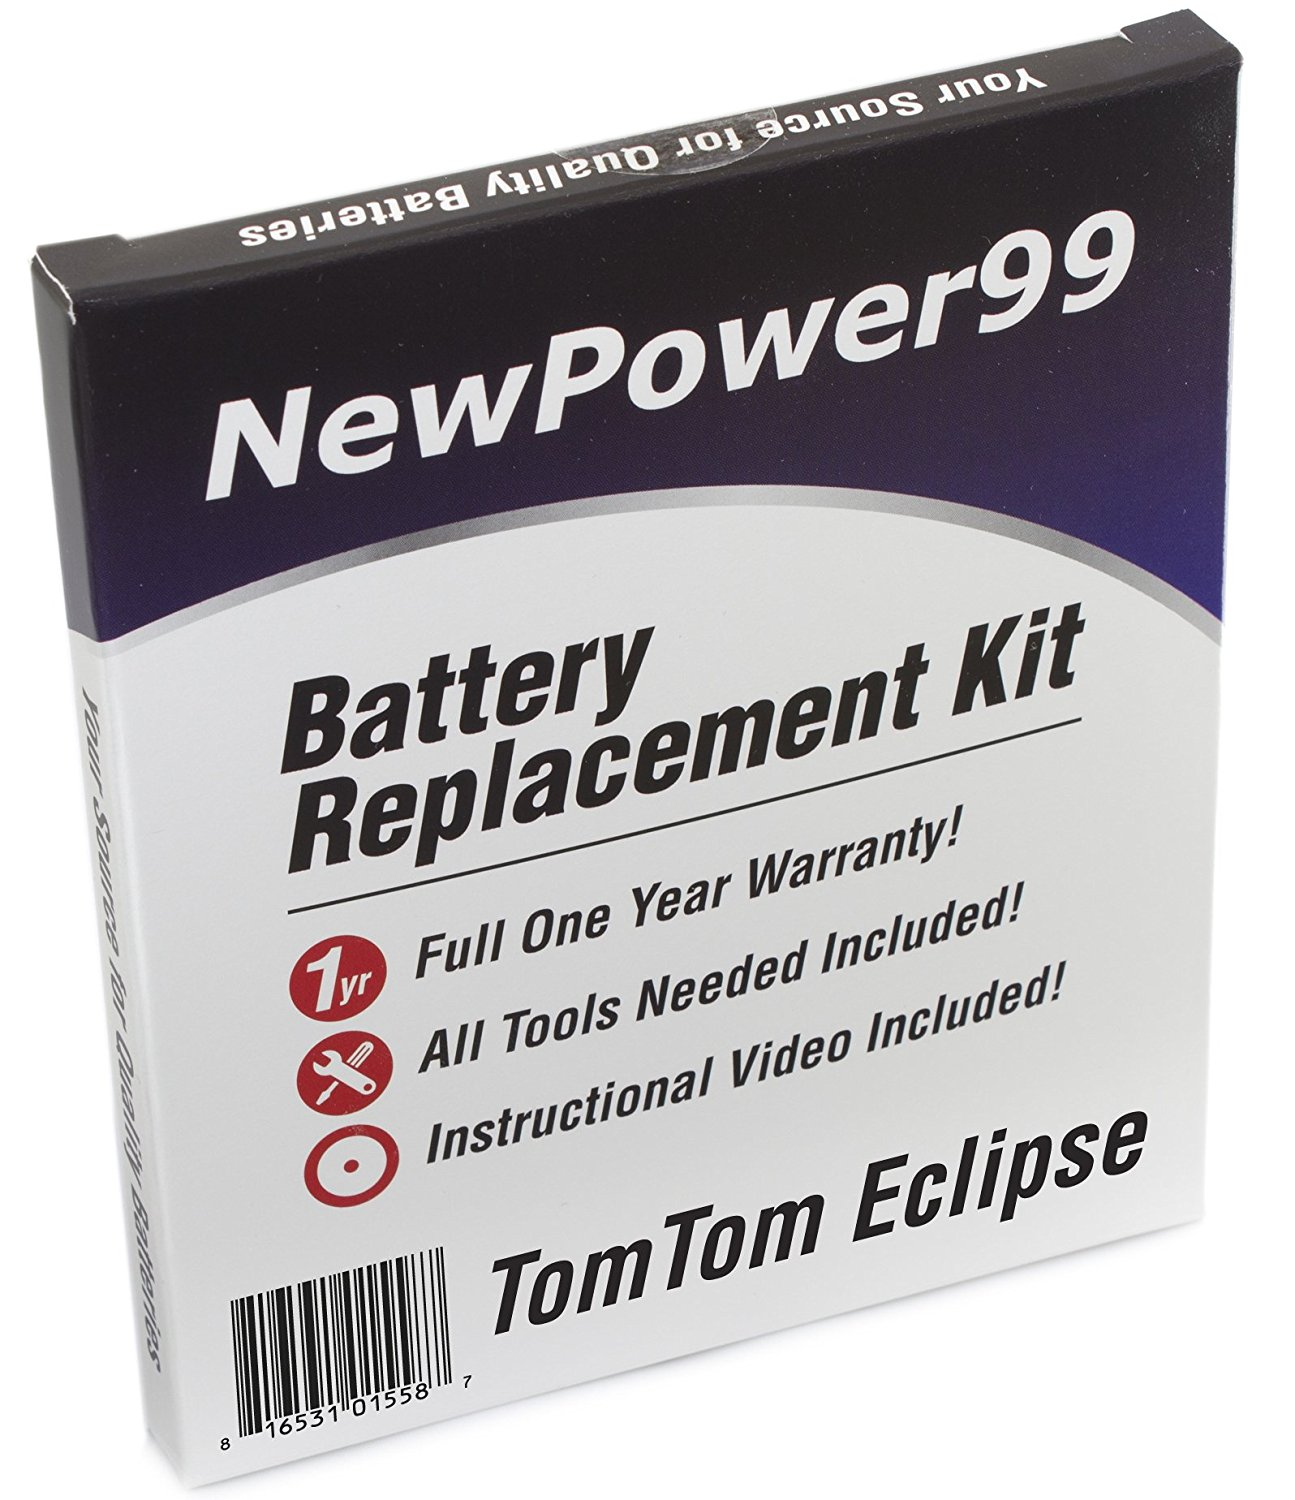 TomTom Eclipse Battery Replacement Kit with Installation Video, Tools, and Extended Life Battery